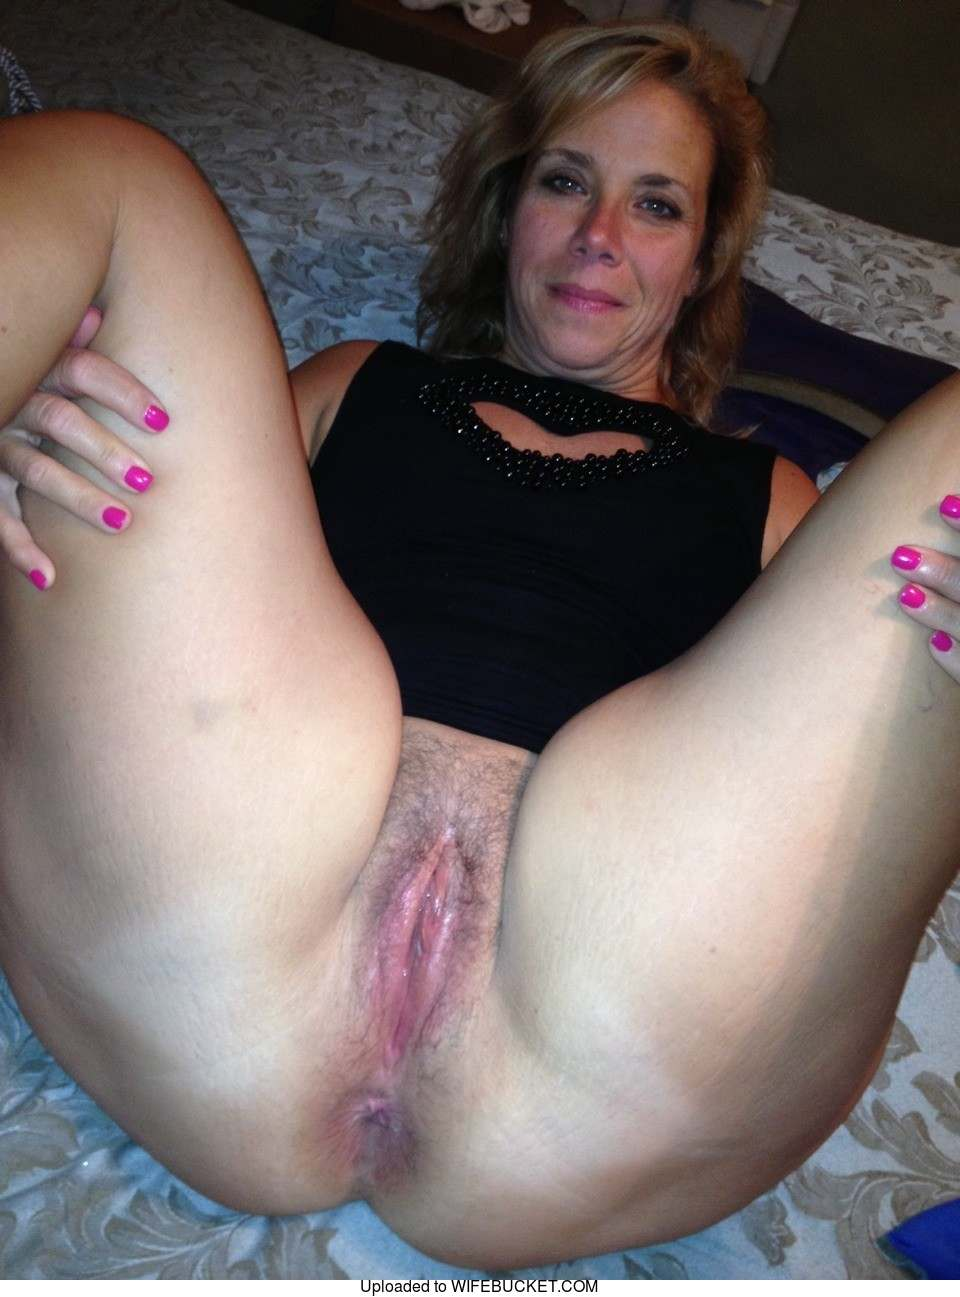 Real married women showing pussy